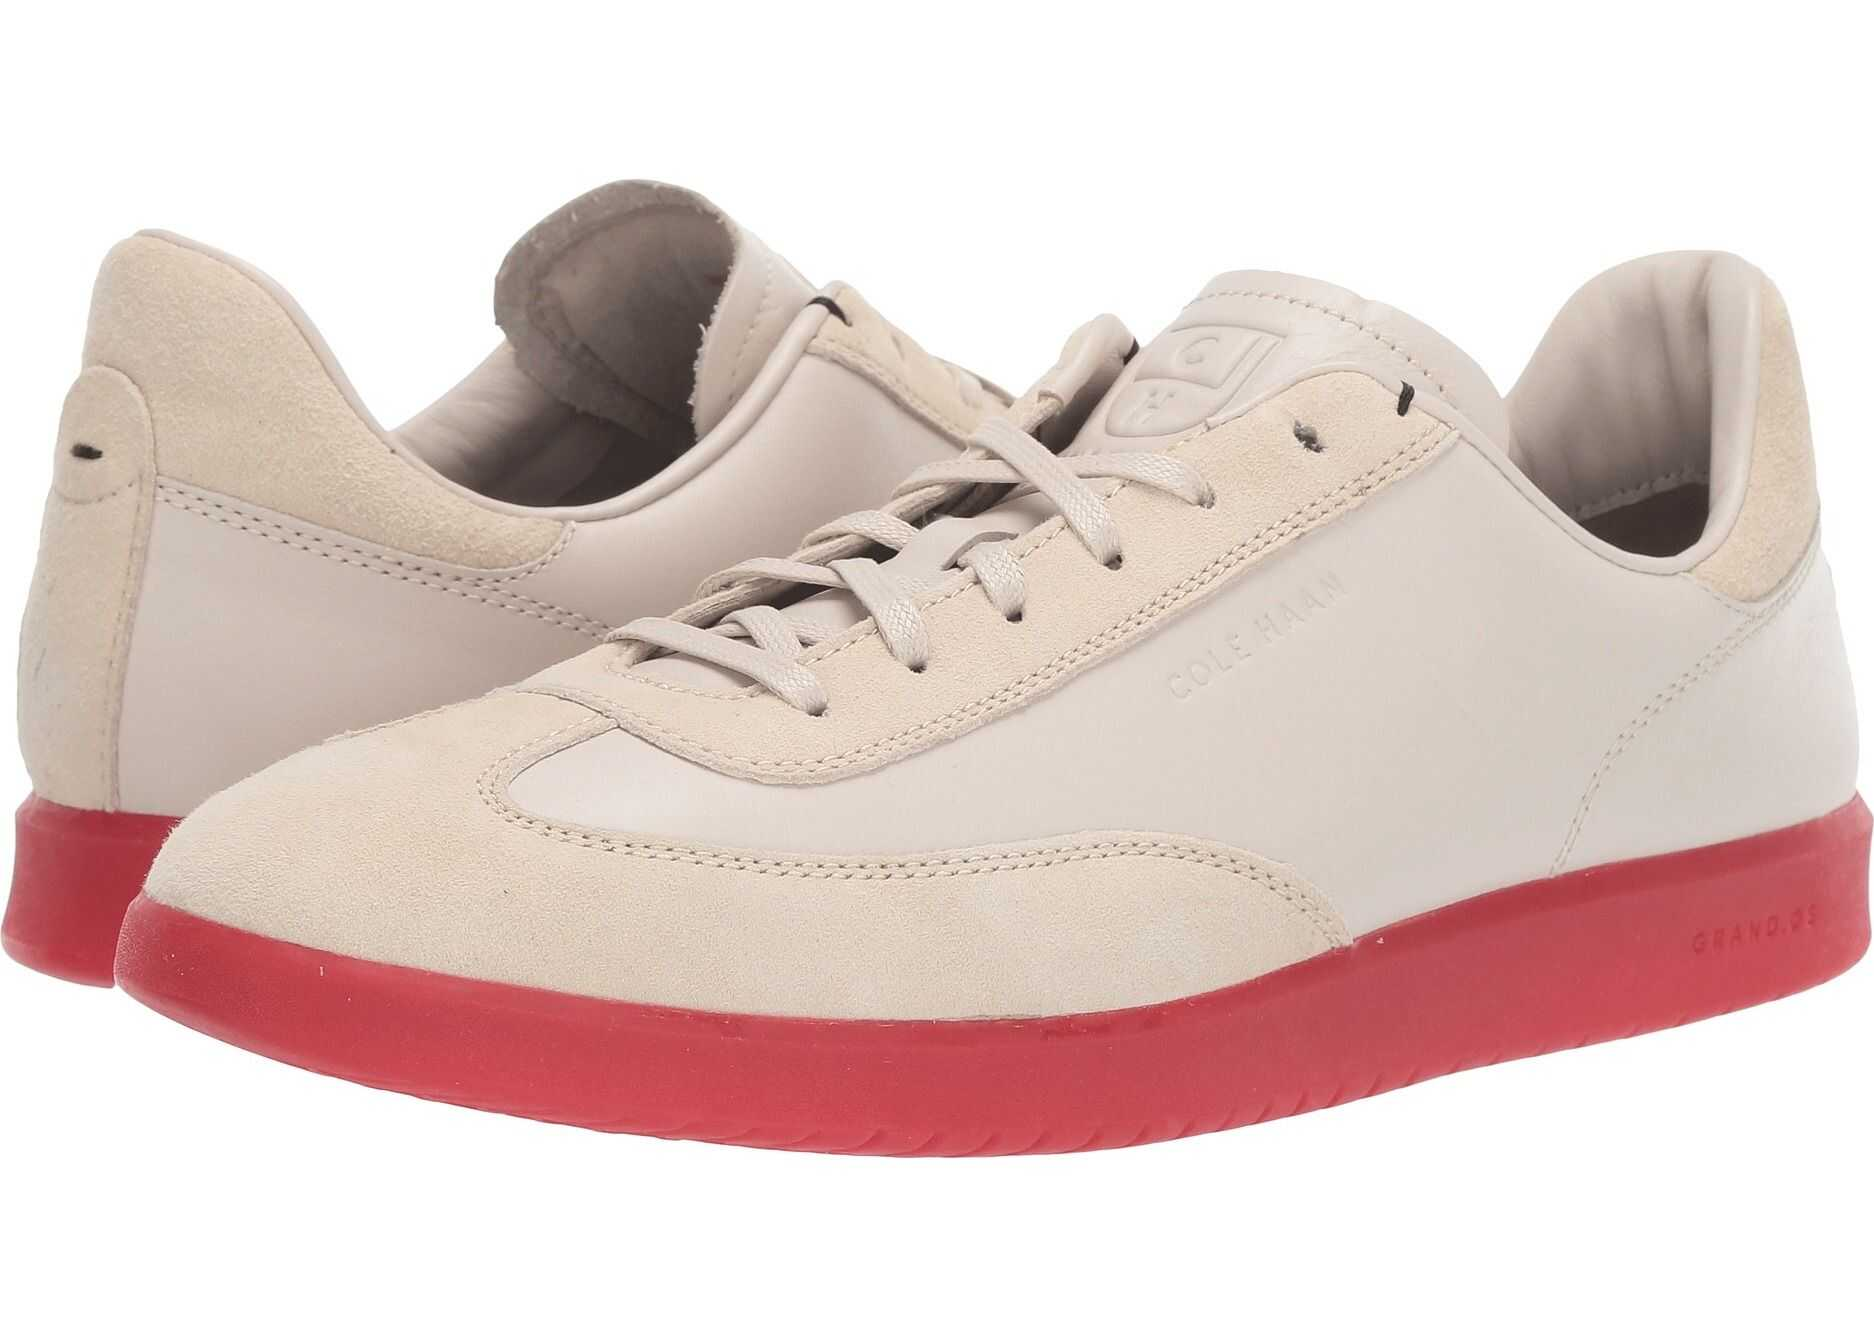 Cole Haan Grandpro Turf Sneaker Pumice/Red Translucent